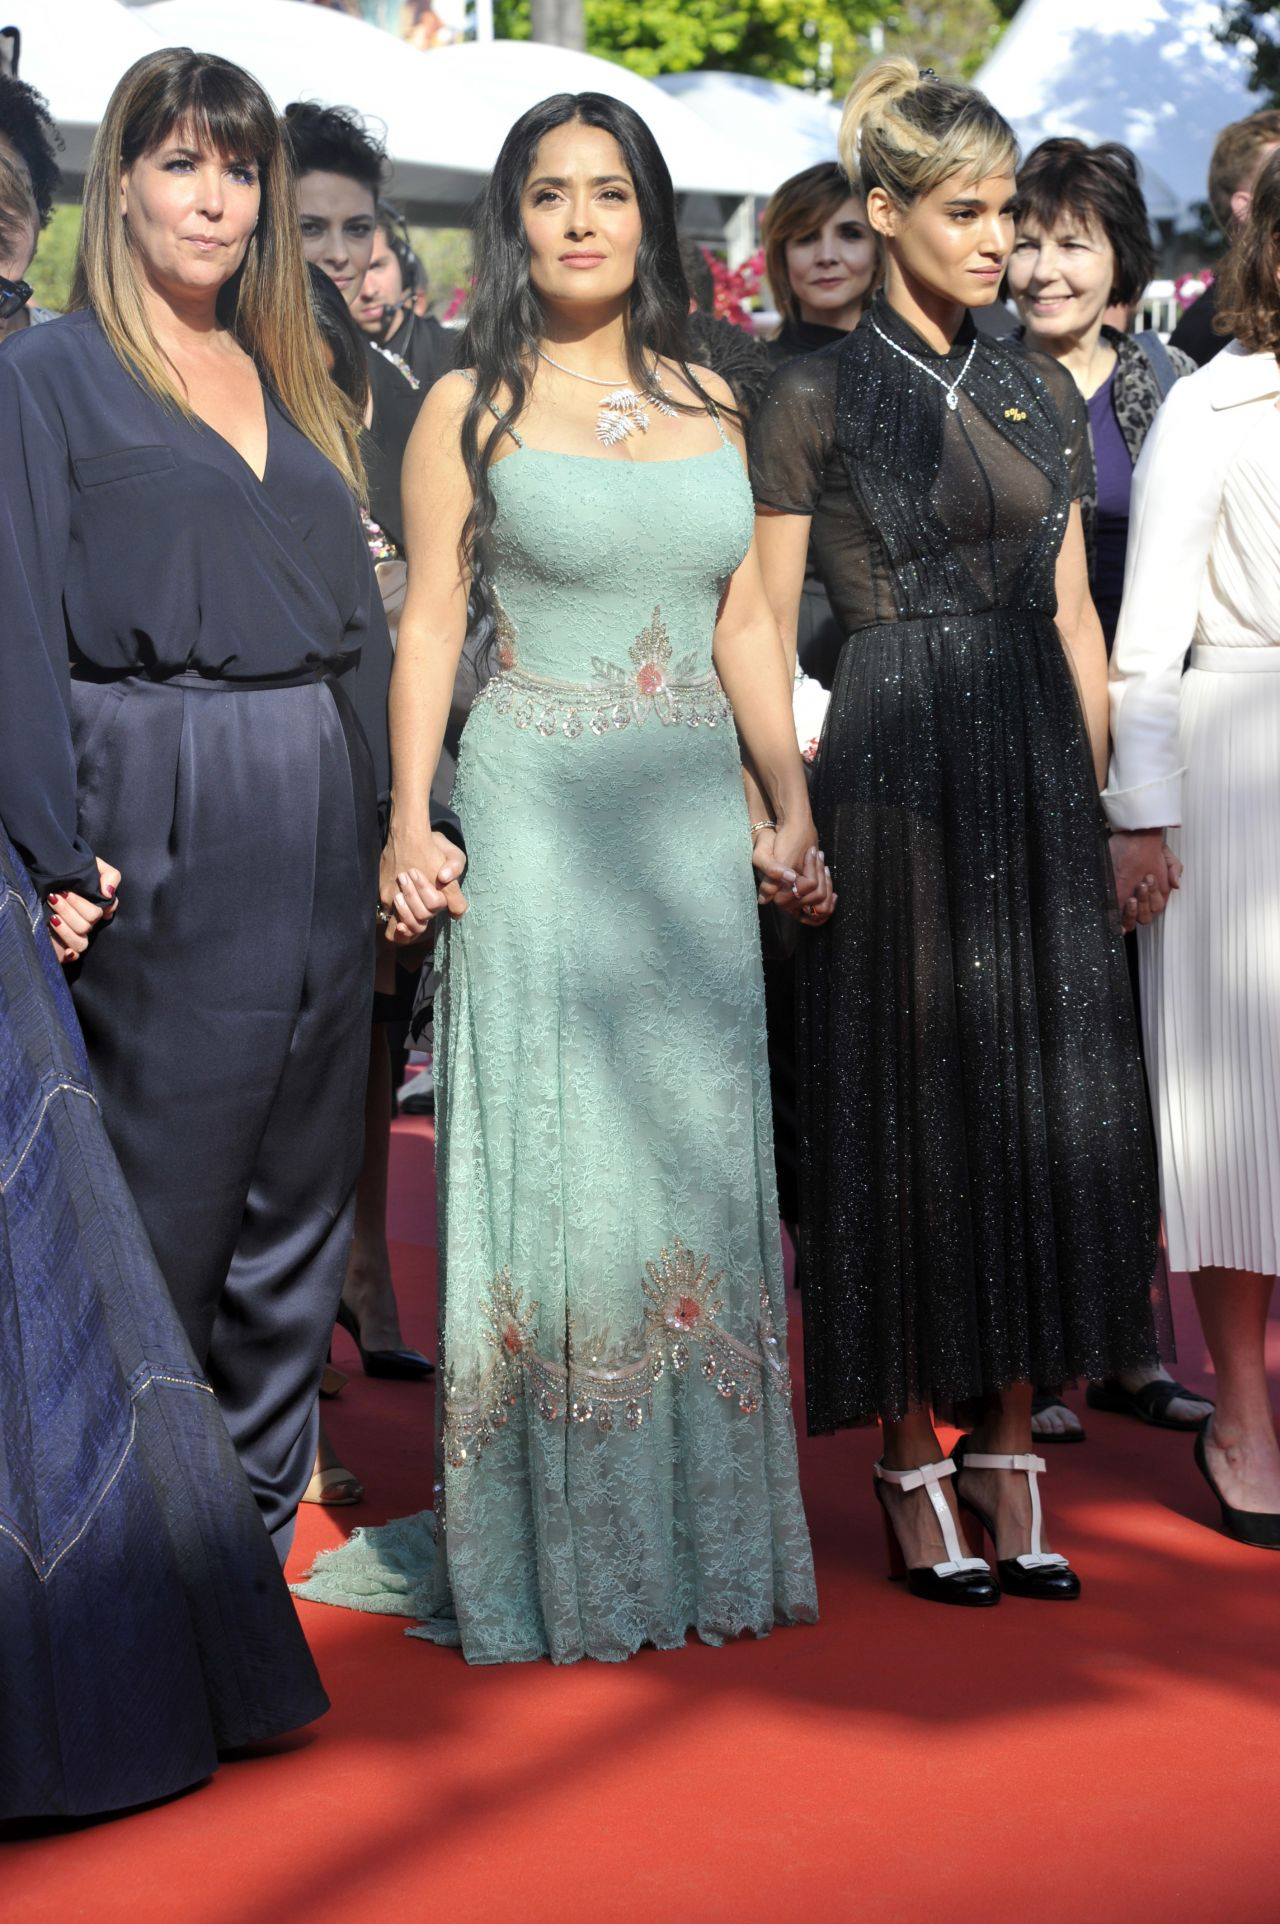 http://celebmafia.com/wp-content/uploads/2018/05/salma-hayek-girls-of-the-sun-premiere-at-cannes-film-festival-7.jpg